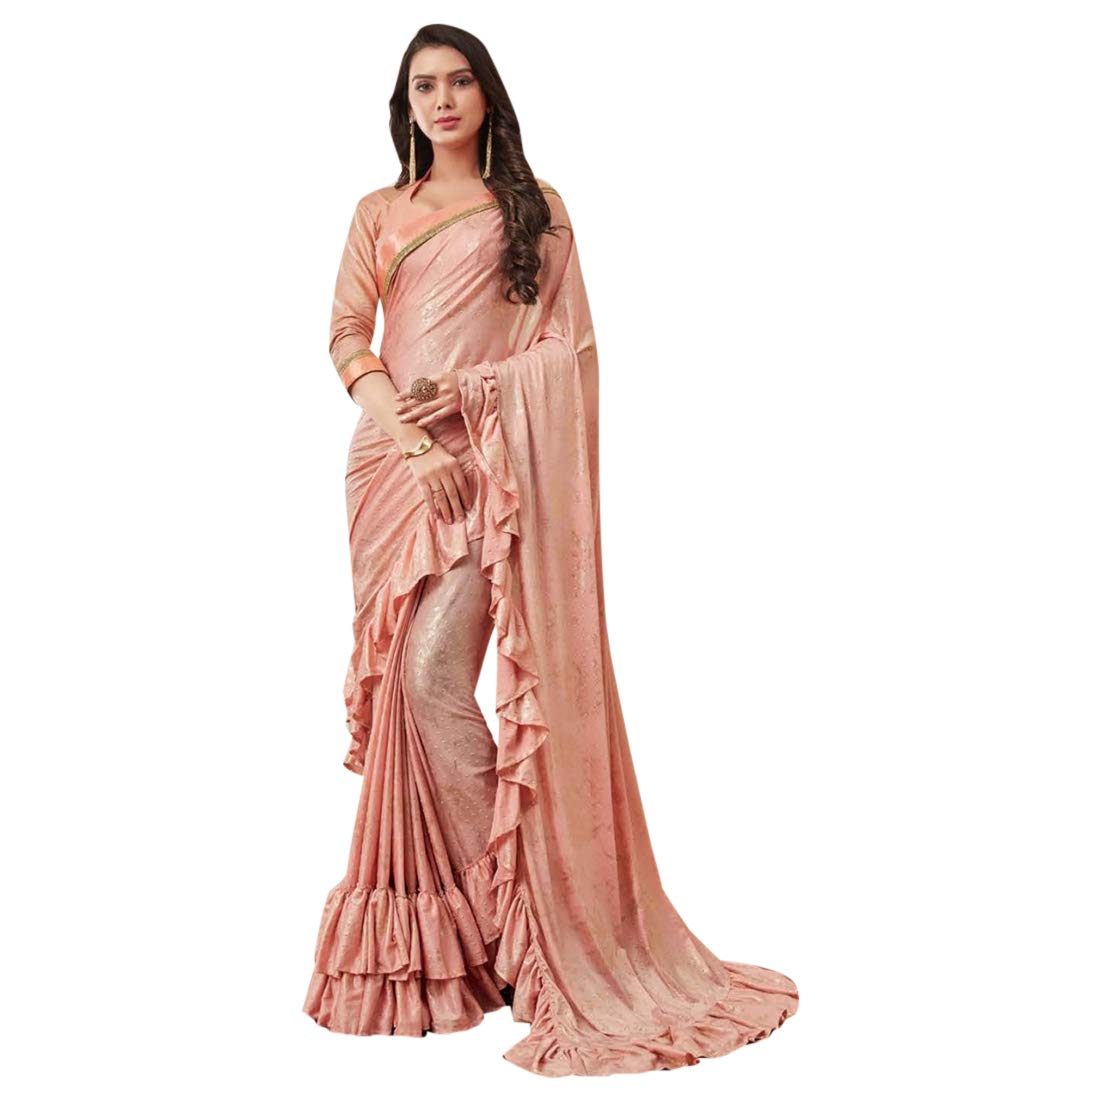 Peach Indian Ethnic Designer Saree Ruffle Border Multifabric Sari with Blouse piece Women Party wear 7770